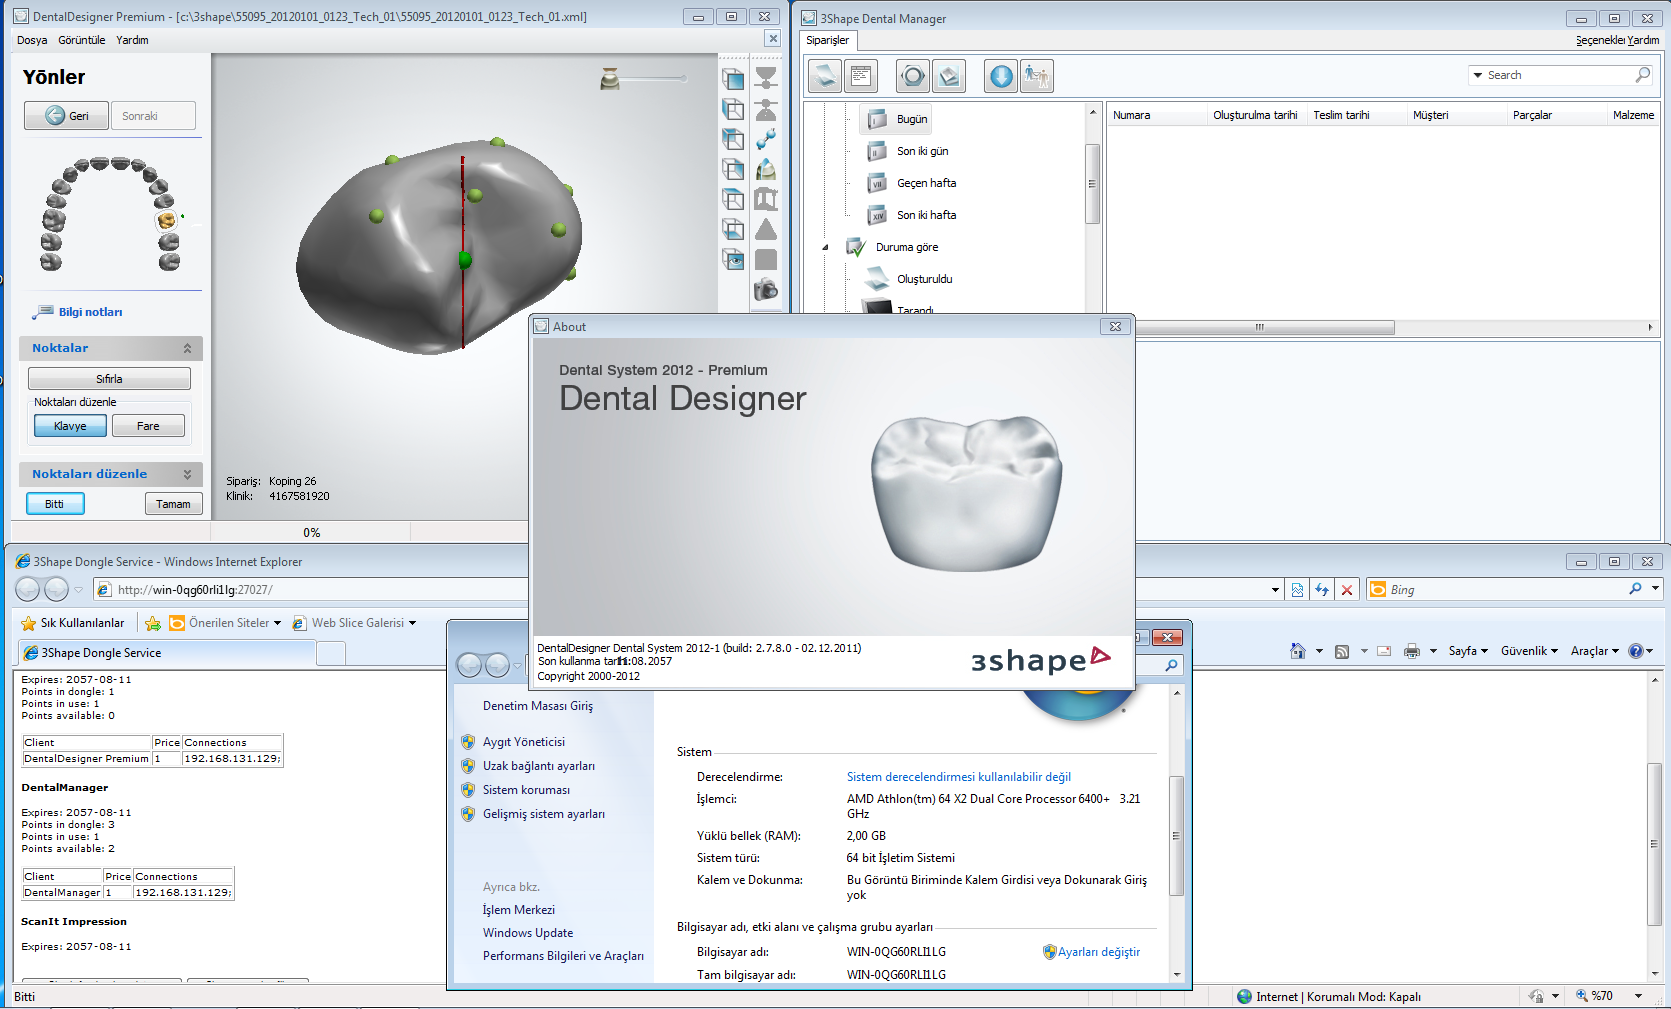 3shape Dental System 2 7 2012 Vip Software